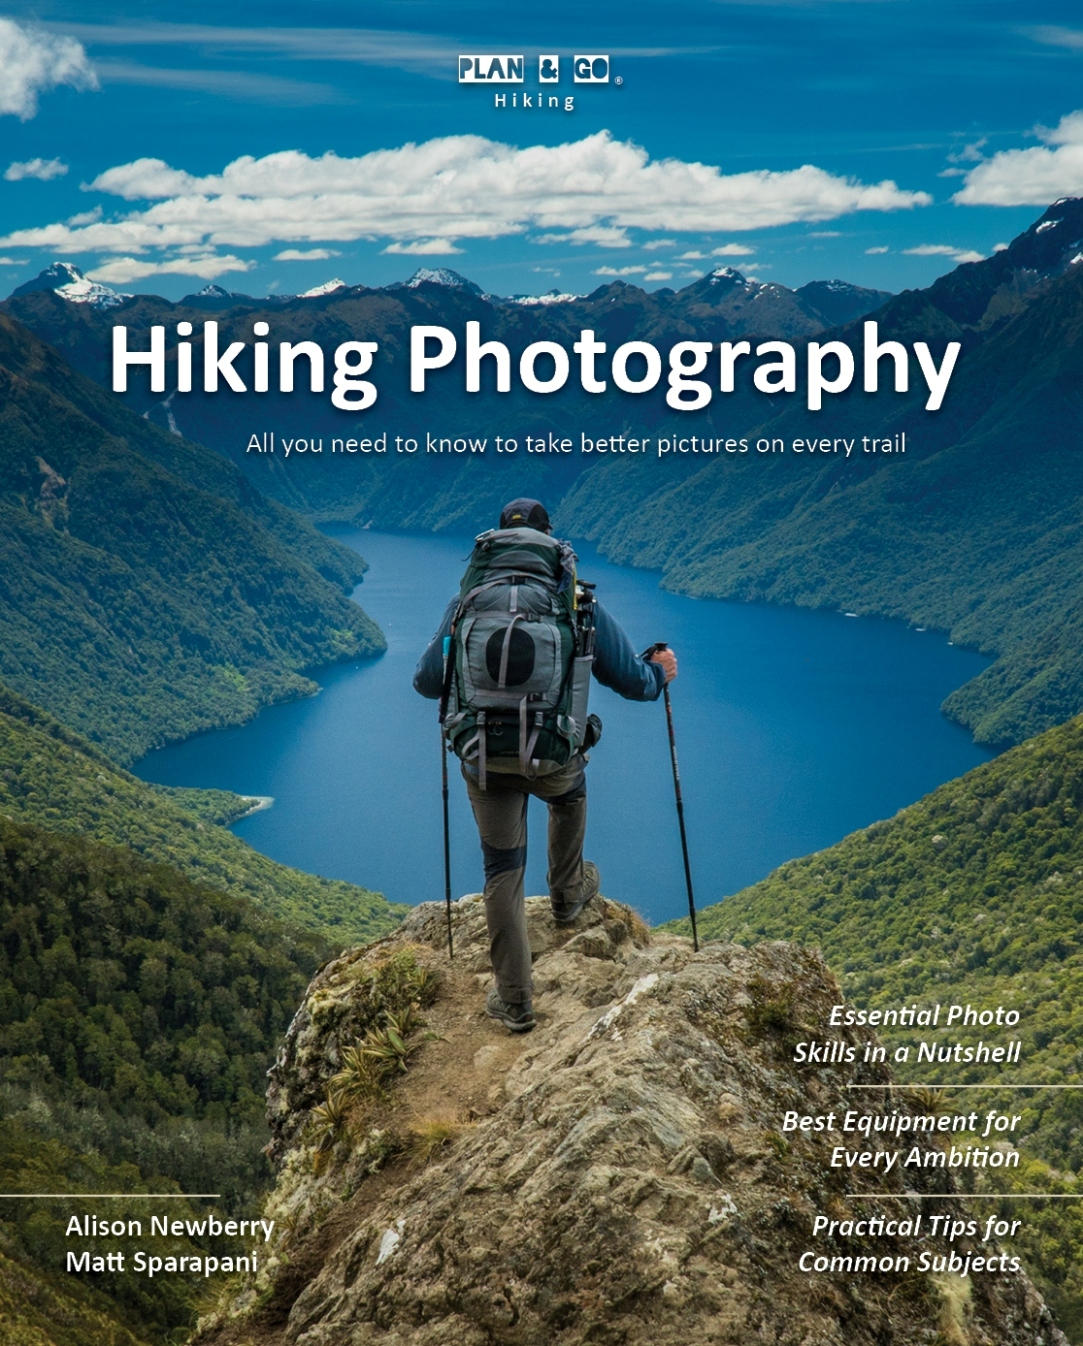 Plan & Go | Hiking Photography